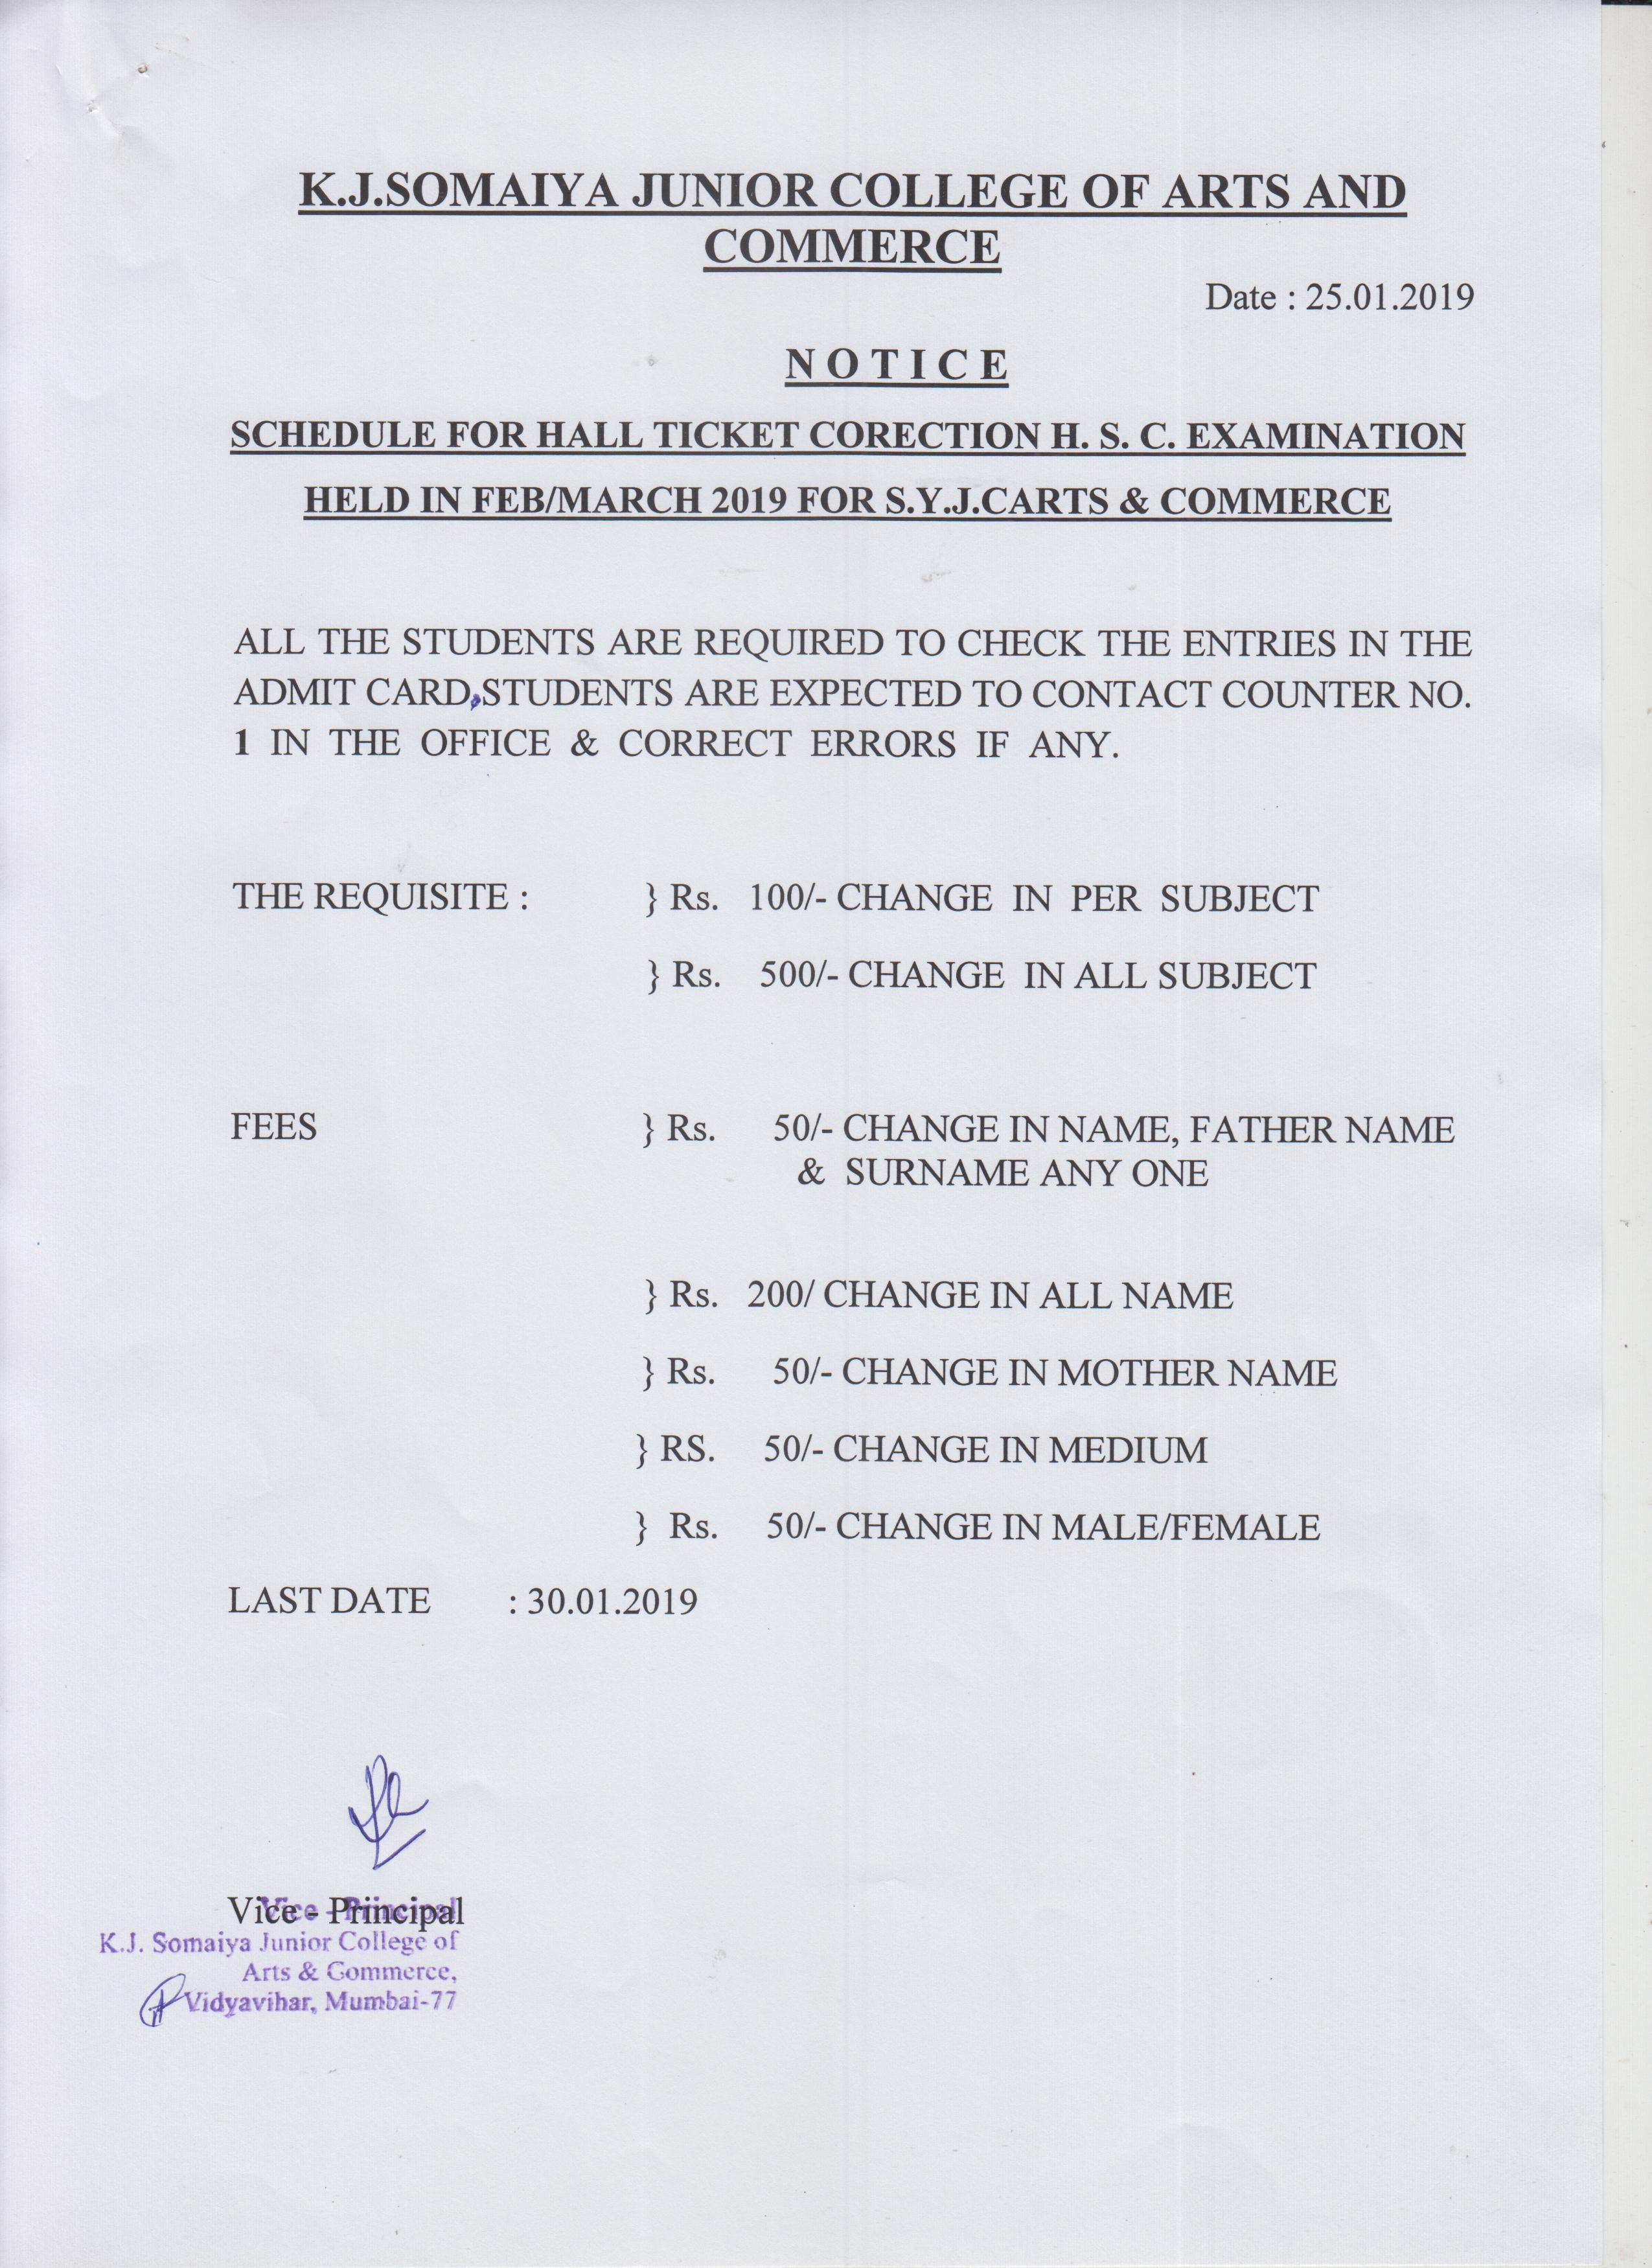 Notice of Schedule for hall ticket correction HSC Examination March 2019